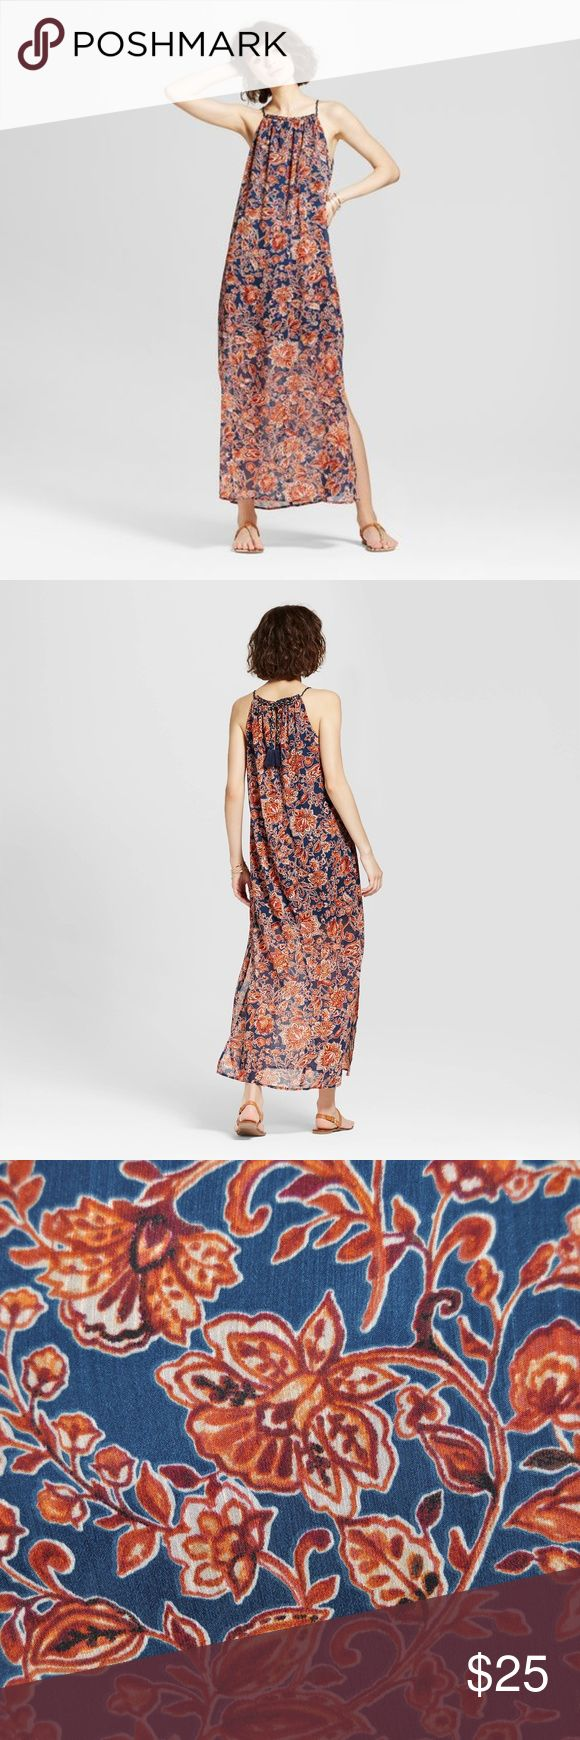 "NEW Copper Floral High-Neck Printed Maxi Dress B3 Show off the carefree spirit of bohemian style. A flowing silhouette brings movement to your look while giving off an effortless vibe that's perfect for strolling the boardwalk or enjoying an outdoor brunch w/friends. Finish off your look by slipping into comfy sandals &  adding dramatic earrings to complement the lively pattern on the dress. Tassels hang at the tied-back detail for an added fun spark. Model wears S/5, 5'9.5""  size S…"